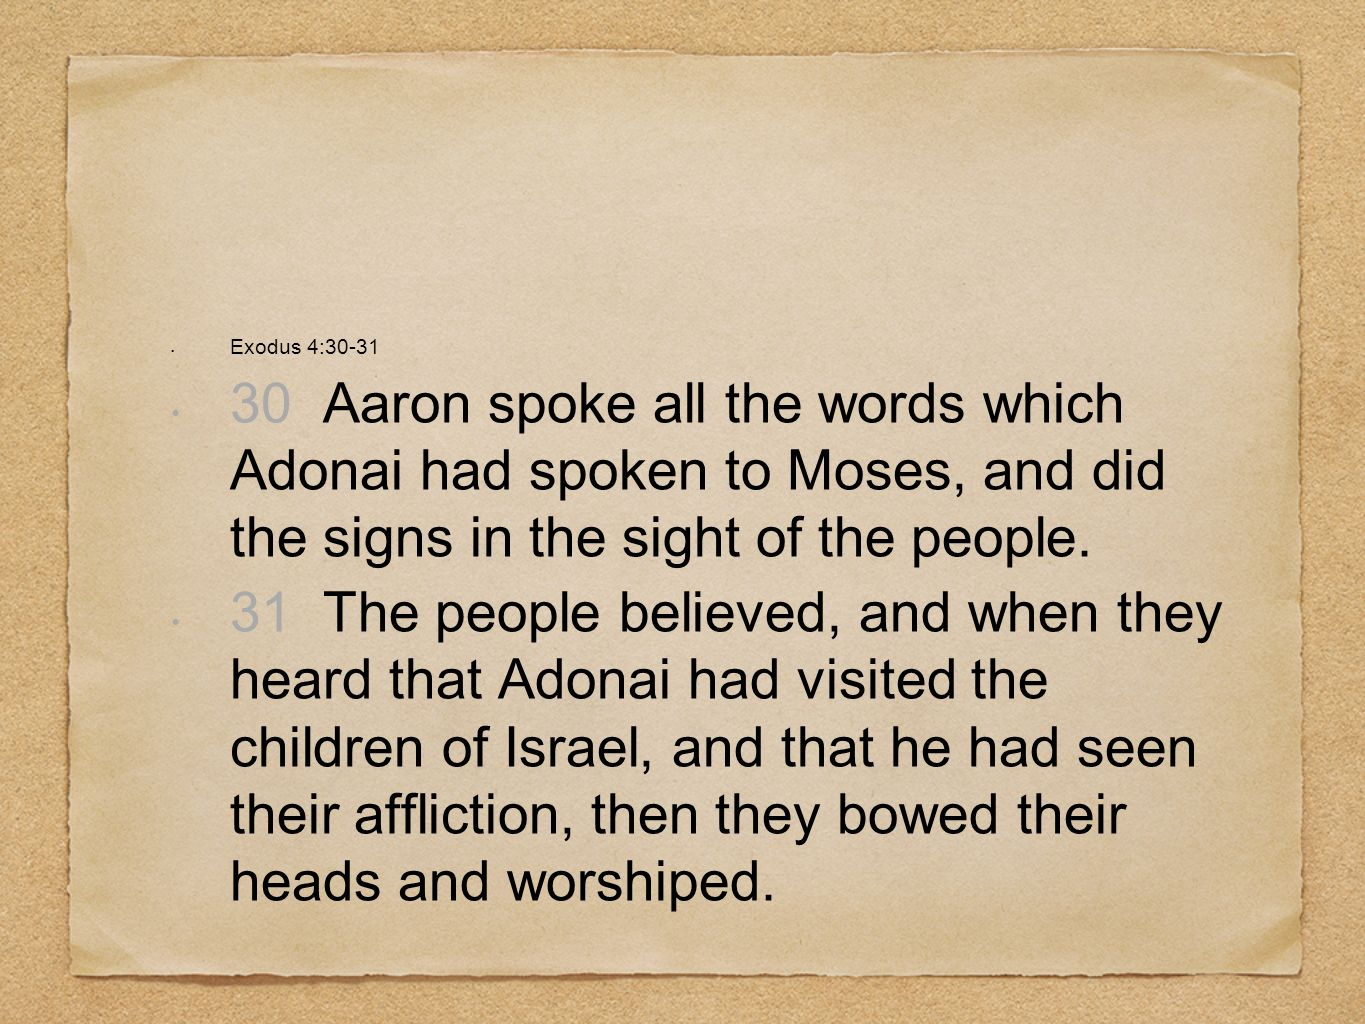 Exodus 4:30-31 30 Aaron spoke all the words which Adonai had spoken to Moses, and did the signs in the sight of the people.